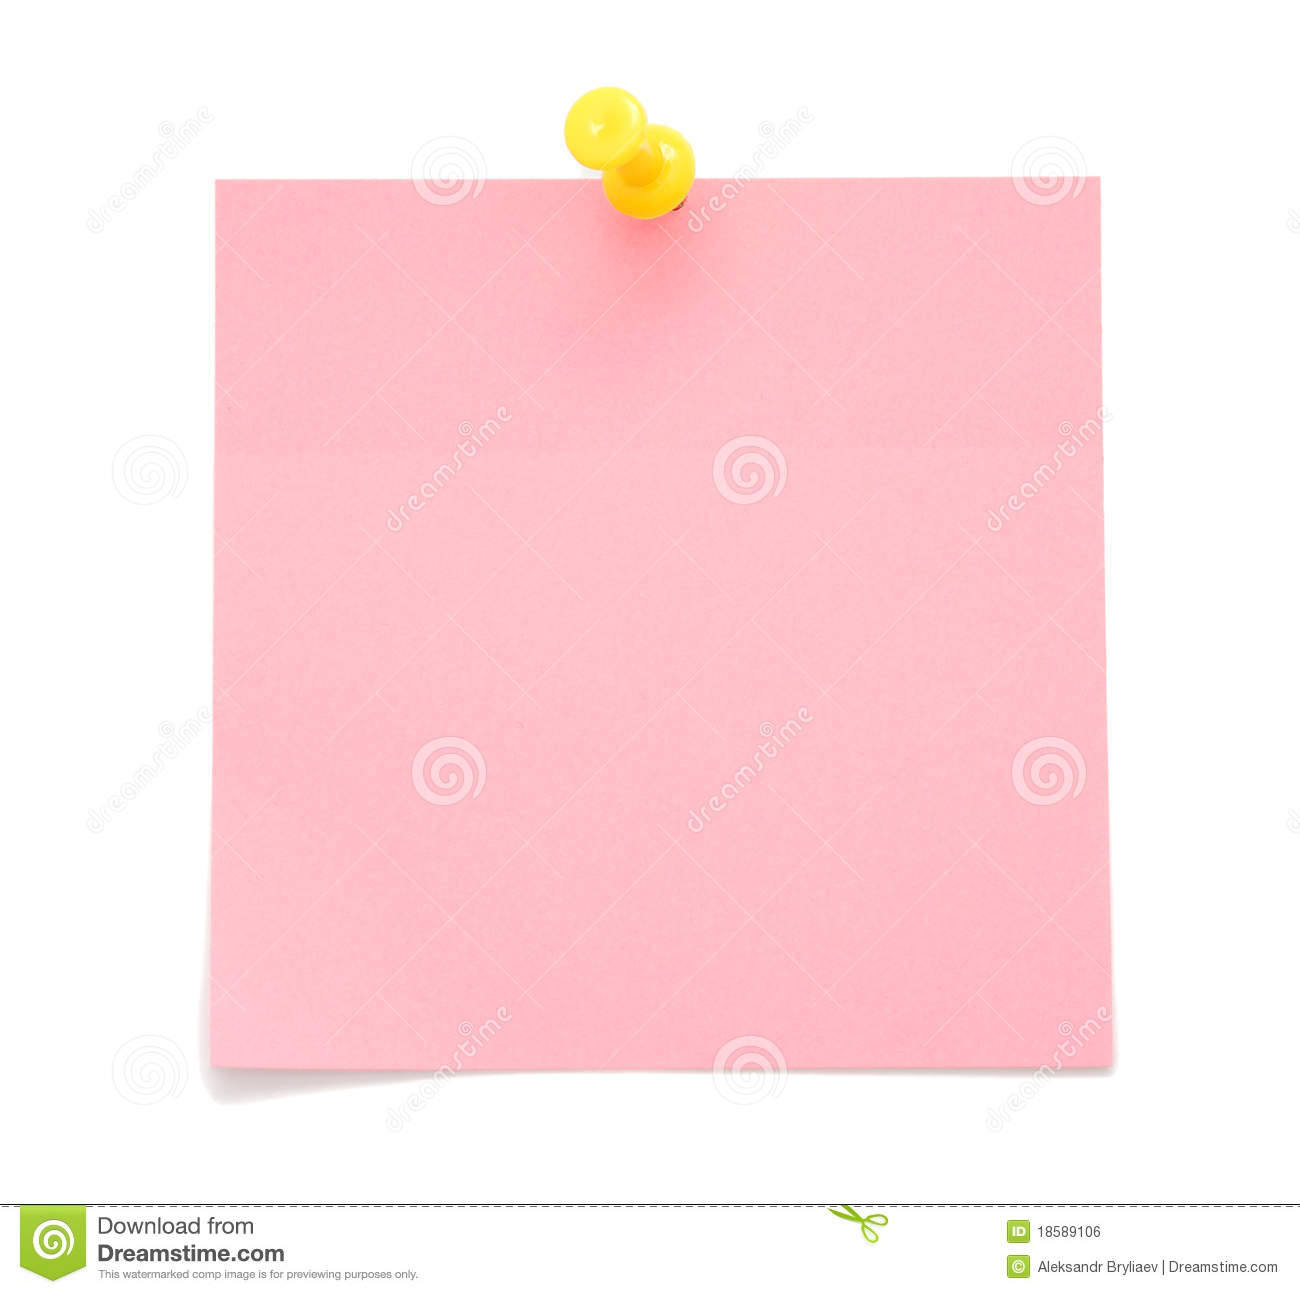 Blank Pink Post-it Note Royalty Free Stock Image - Image: 18589106